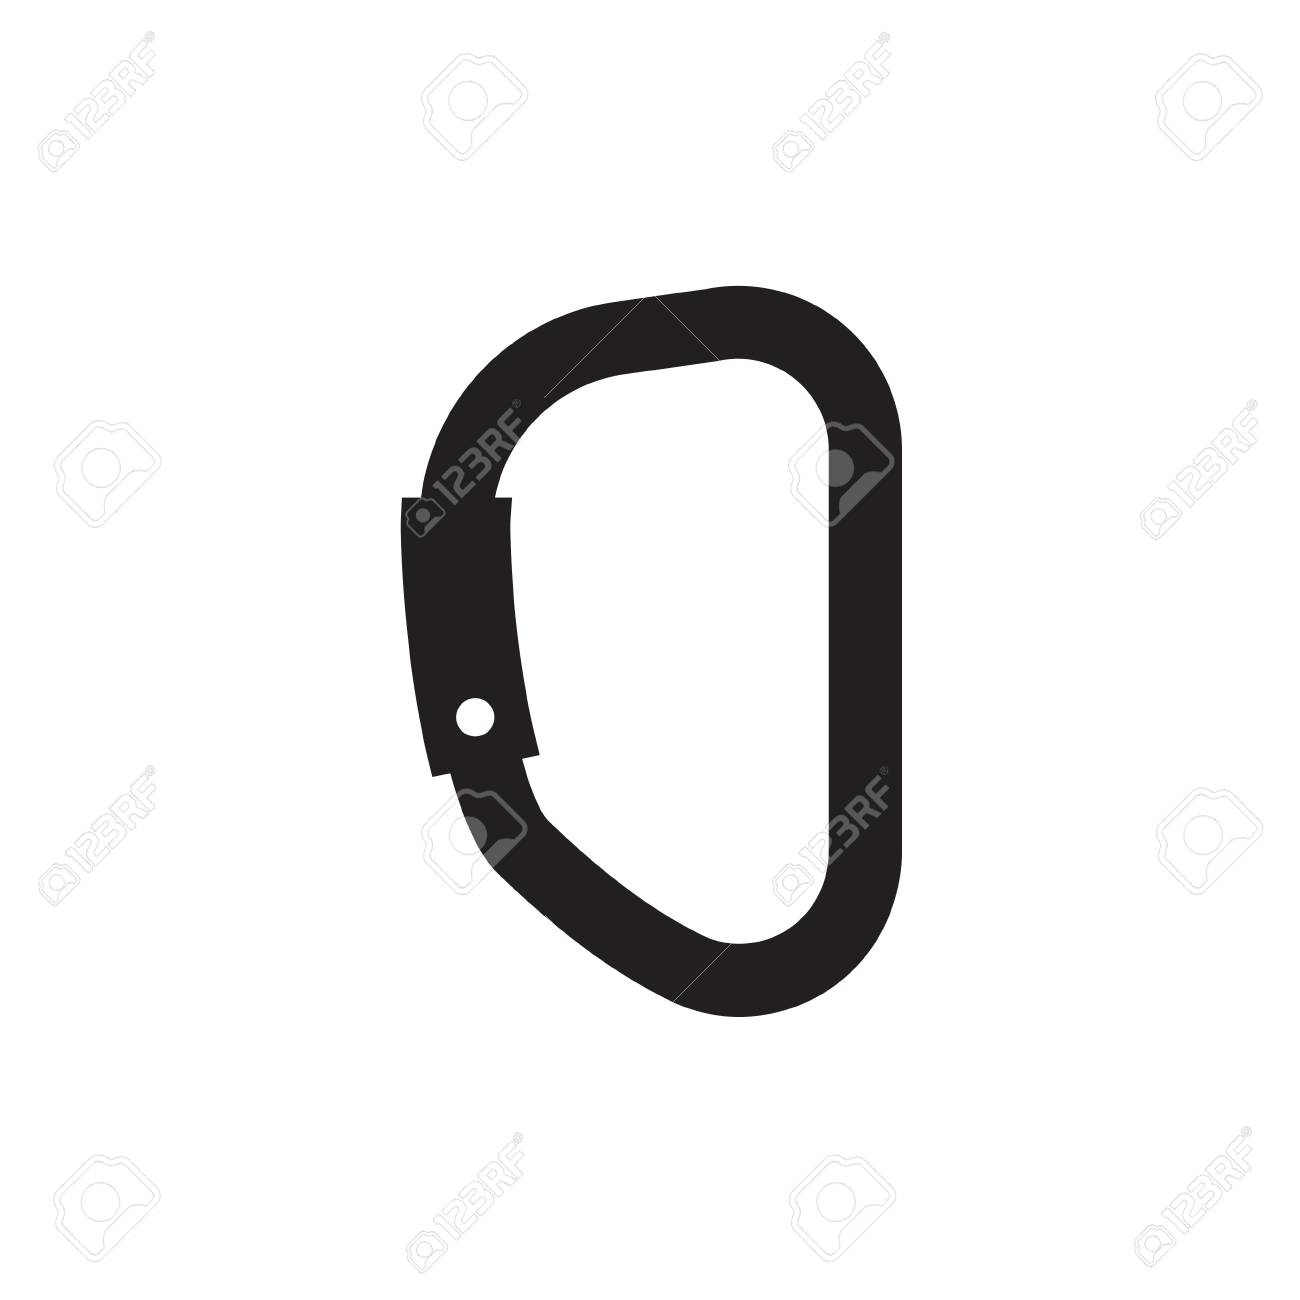 Climbing Carabiner Icon Vector Illustration Royalty Free Cliparts Vectors And Stock Illustration Image 94796603